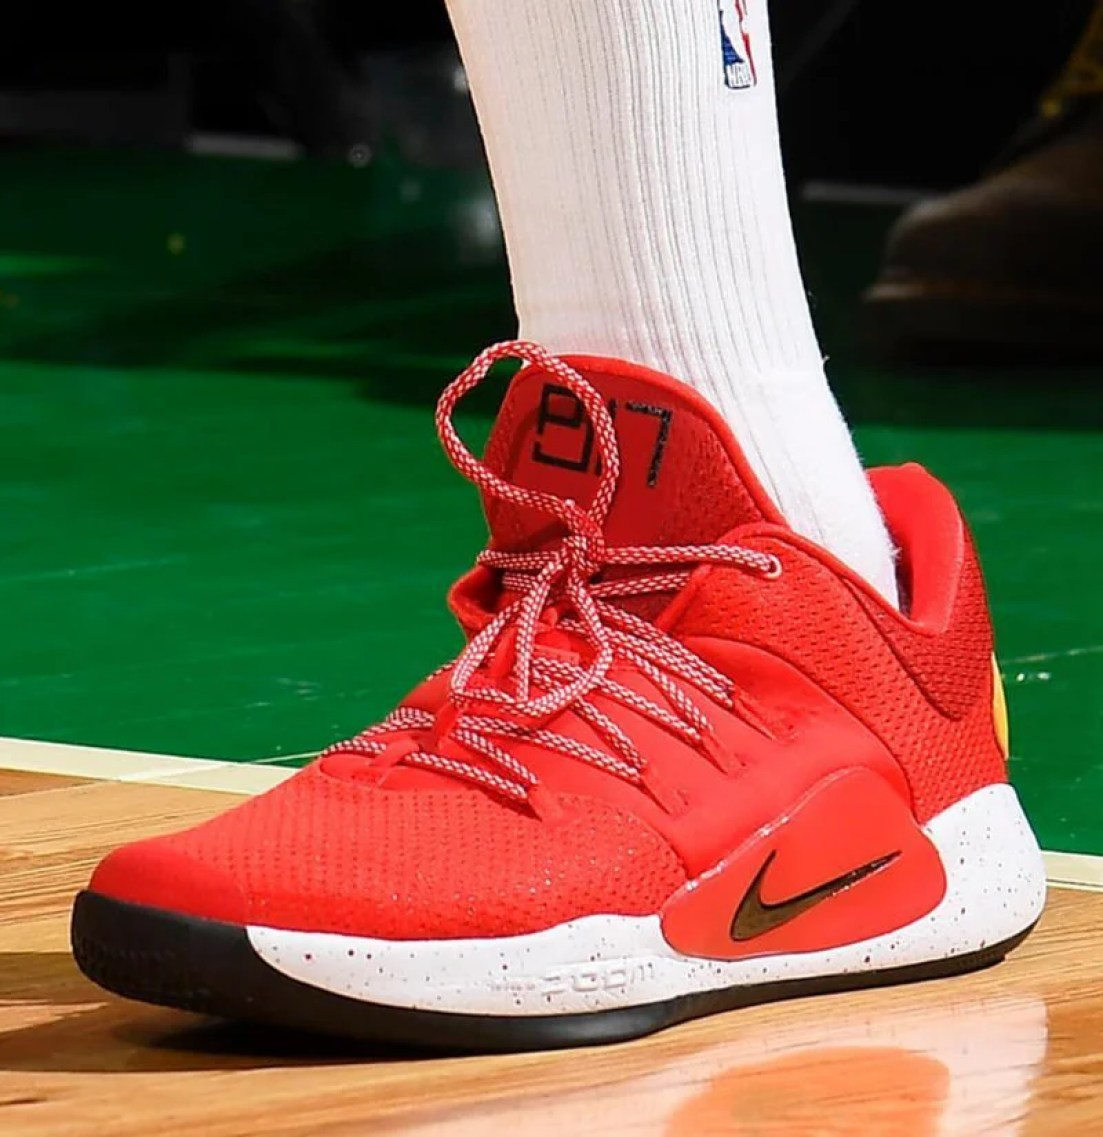 2427b146c ... PJ Tucker in his Nike Hyperdunk X Low PE (photo via BR Kicks)